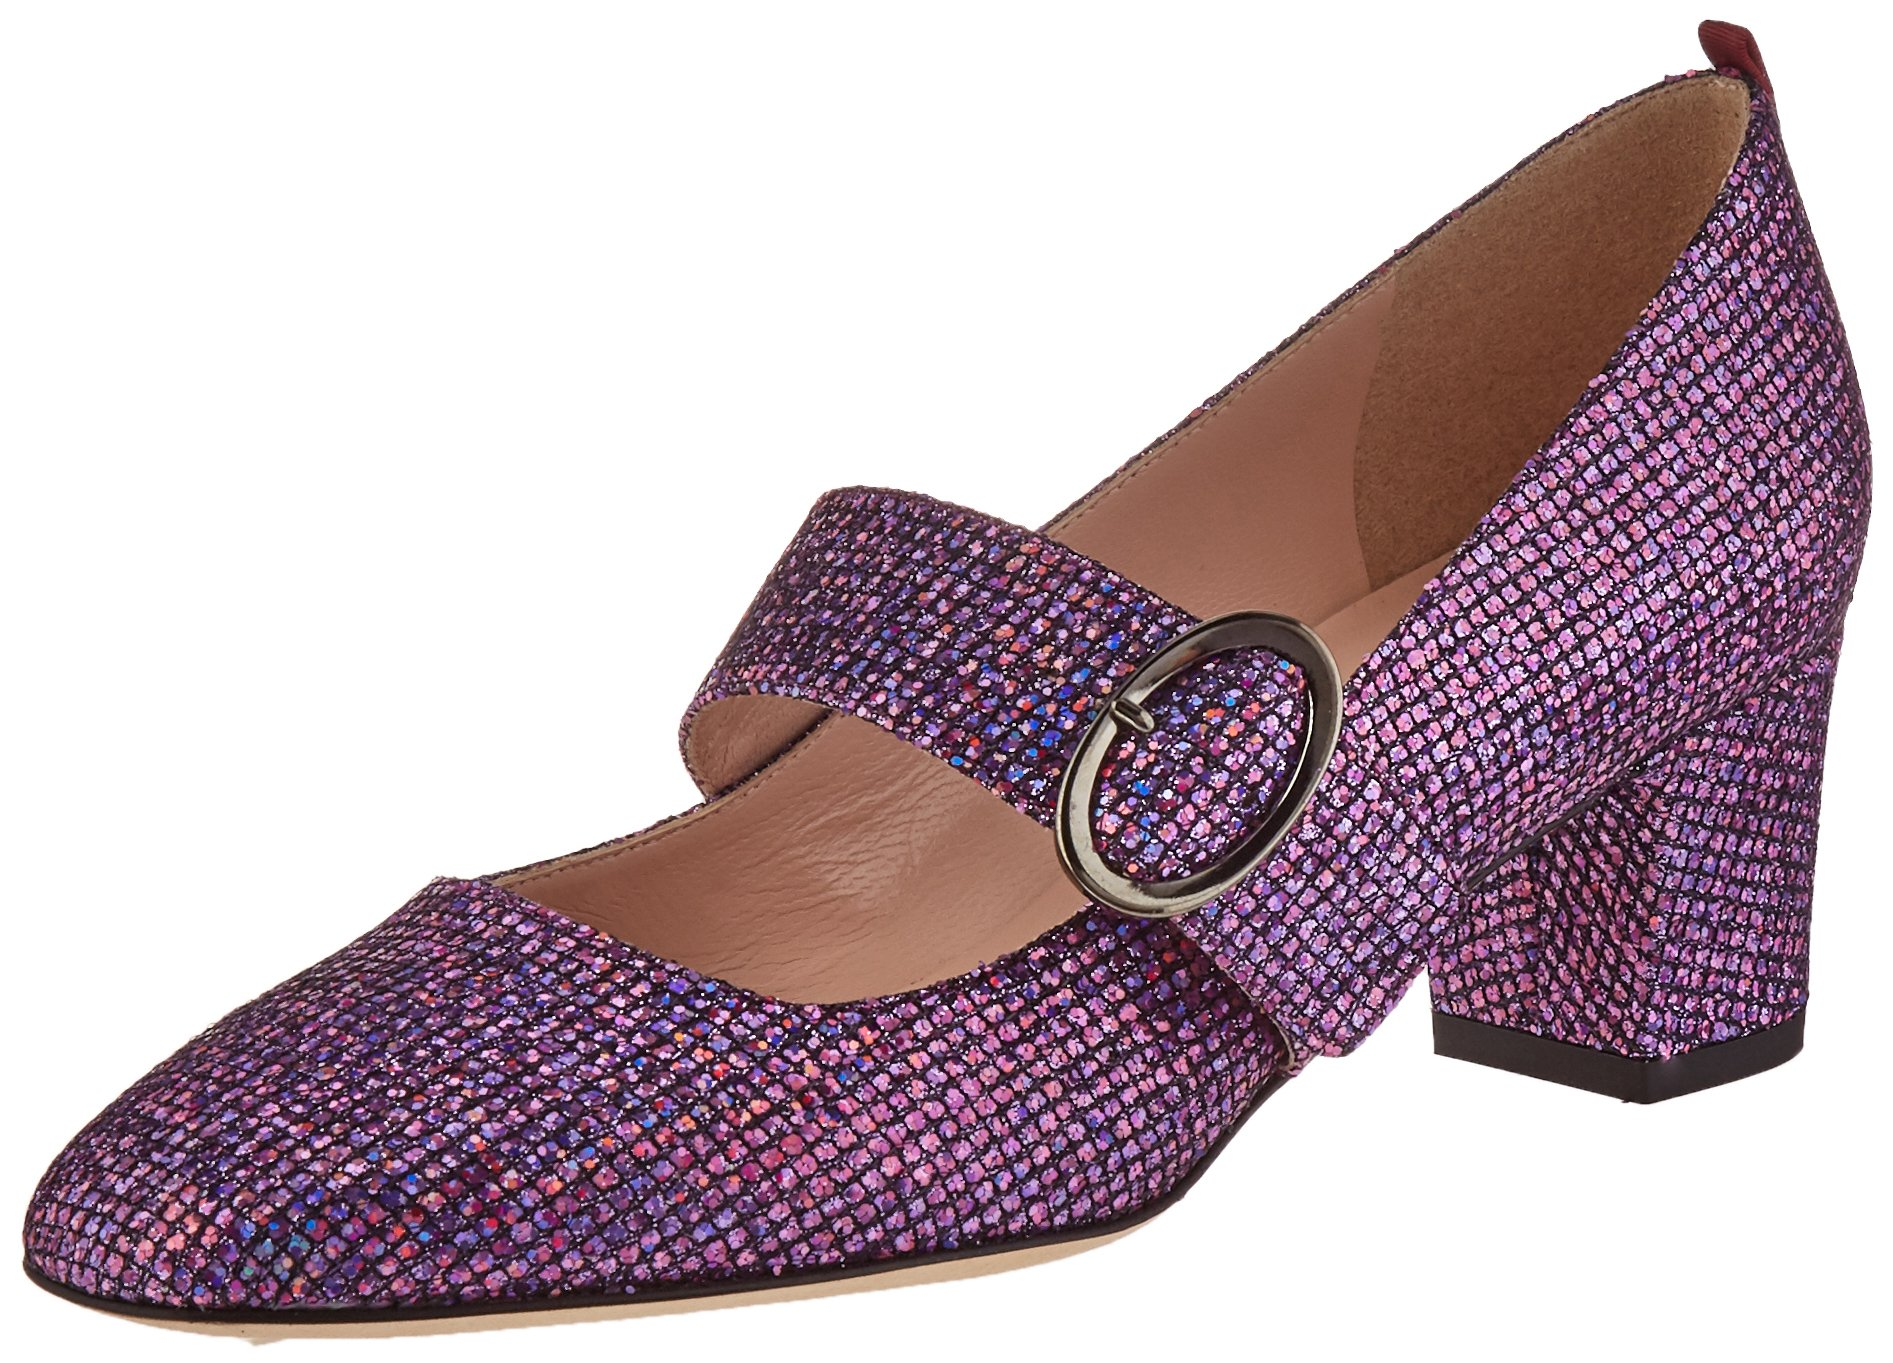 SJP by Sarah Jessica Parker Women's Tartt Dress Pump, Lavender, 37.5 EU/7 B US